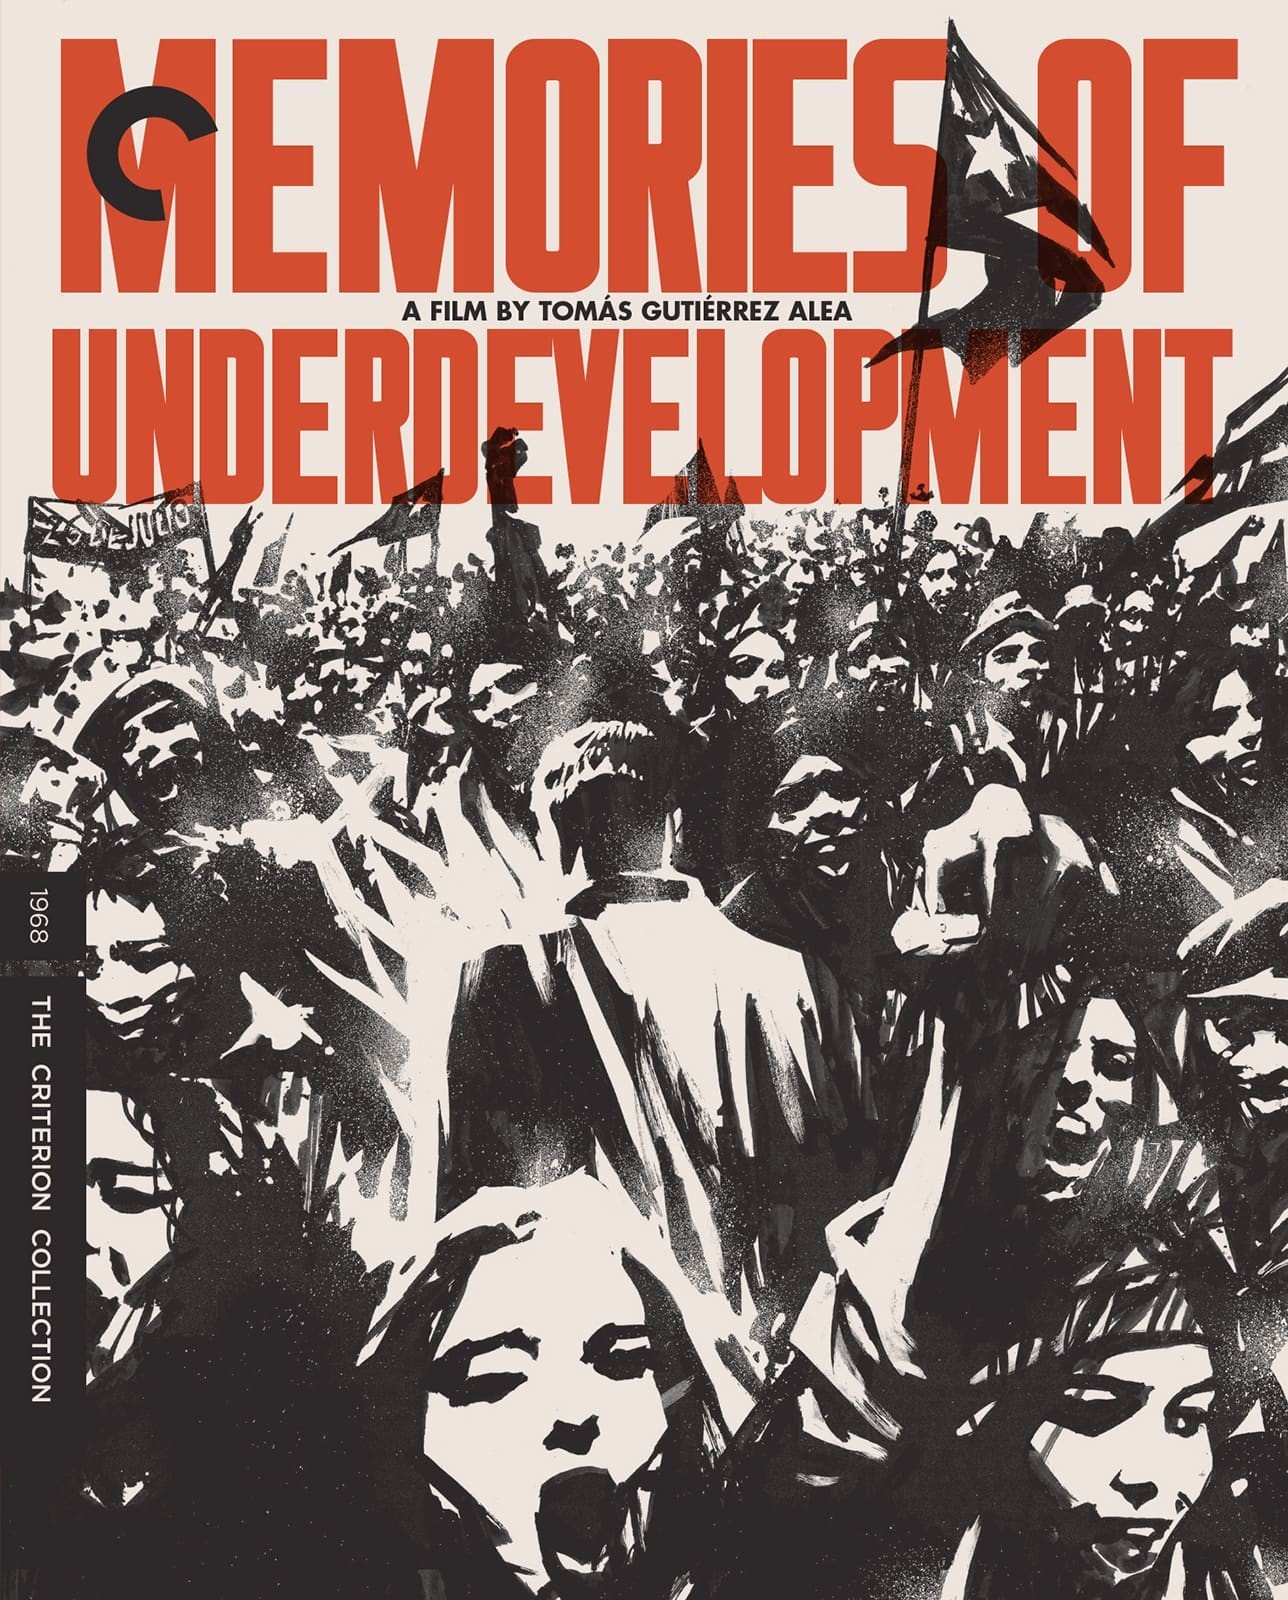 Memories of Underdevelopment (The Criterion Collection)(1968) Blu-ray